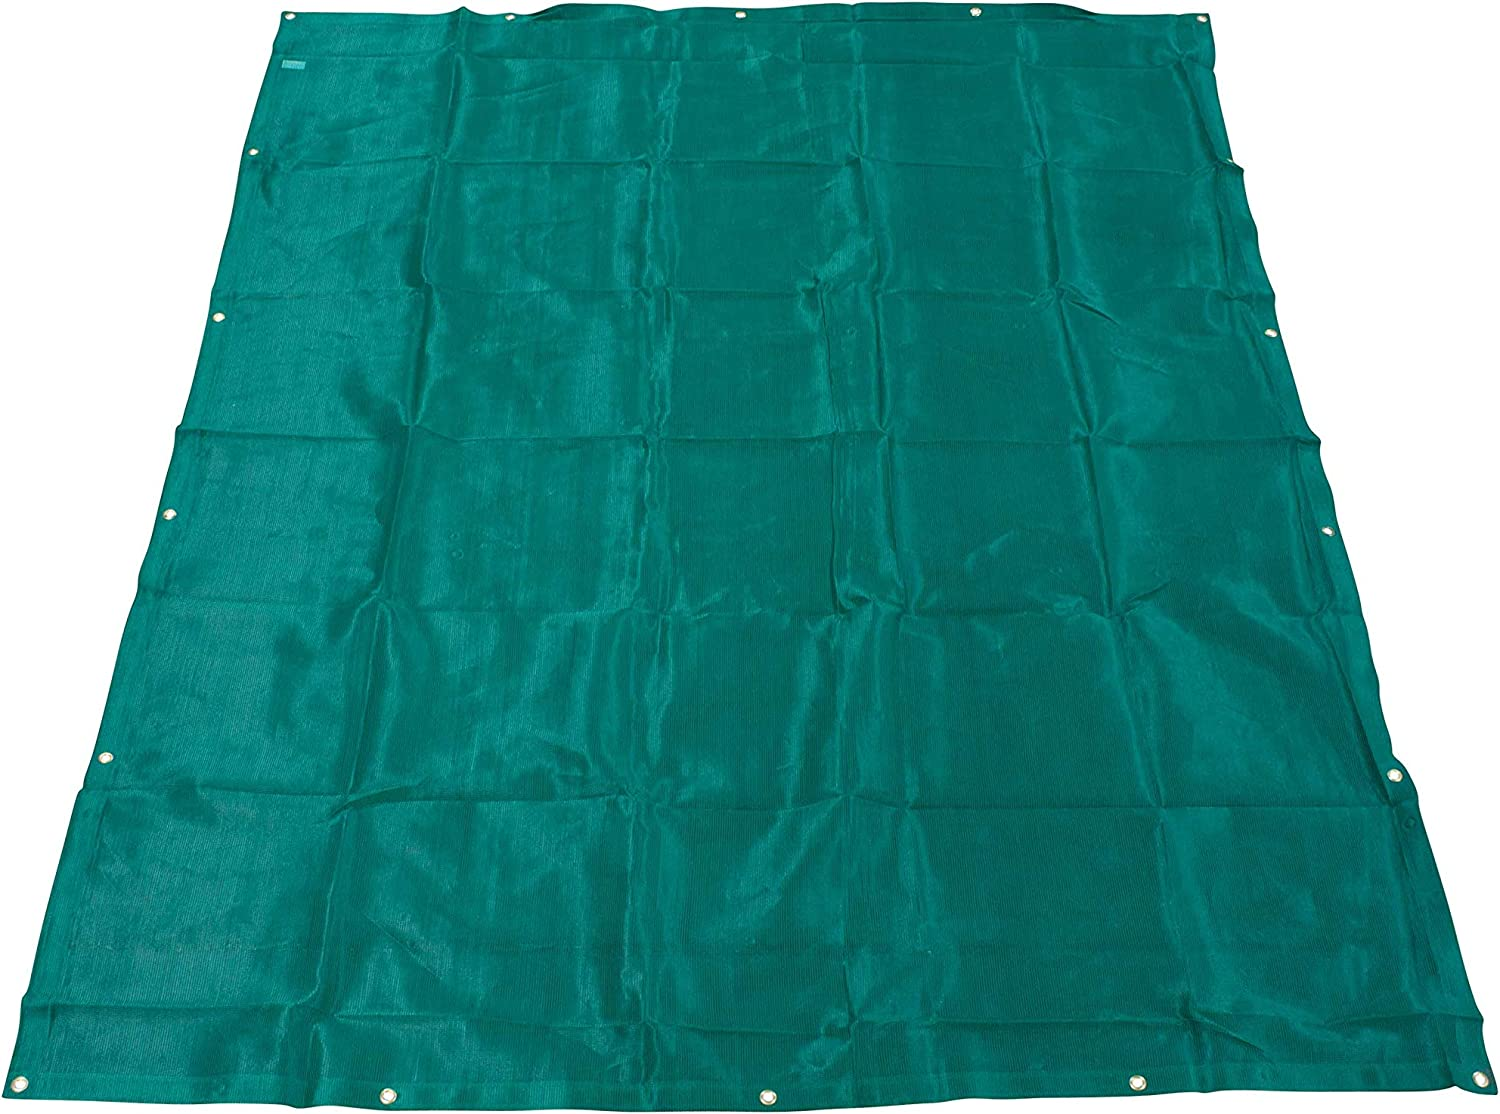 12 x 26 Black 70/% Shade Mesh Tarps with Grommets Roll-Off ROLL-OFF Mytee Products